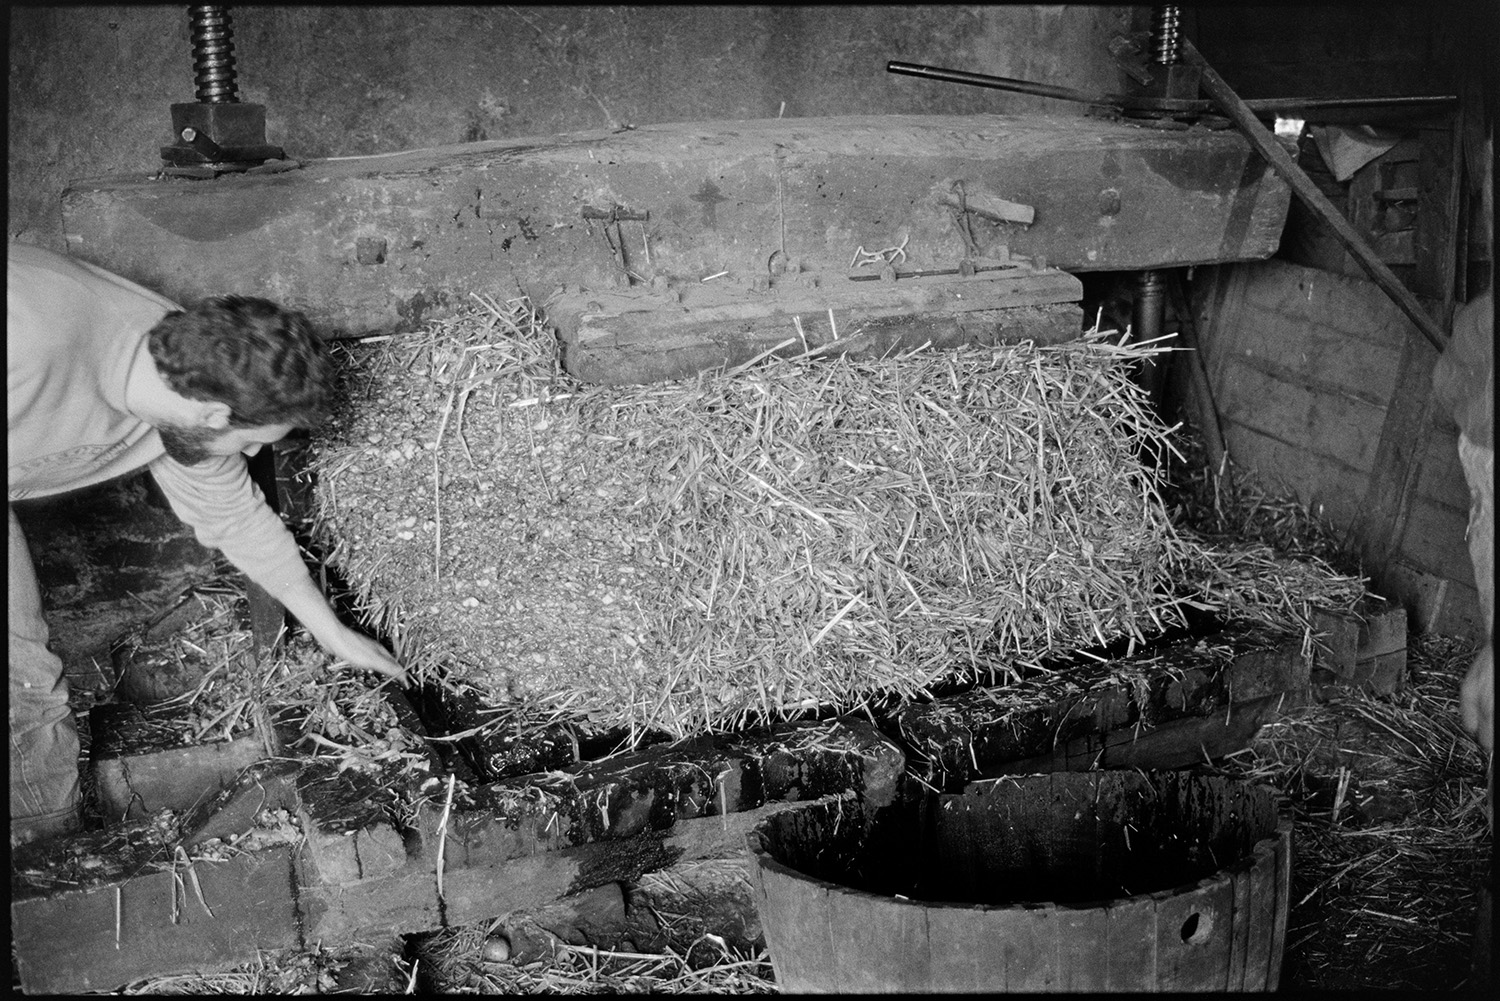 Pressing cider on farm, crusher and barrel. <br /> [A man, possibly from the Down family, operating a cider press in a barn at Spittle Farm, Chulmleigh. The press is squashing the cheese, layers of apple pulp and straw, and cider is running into a barrel underneath.]